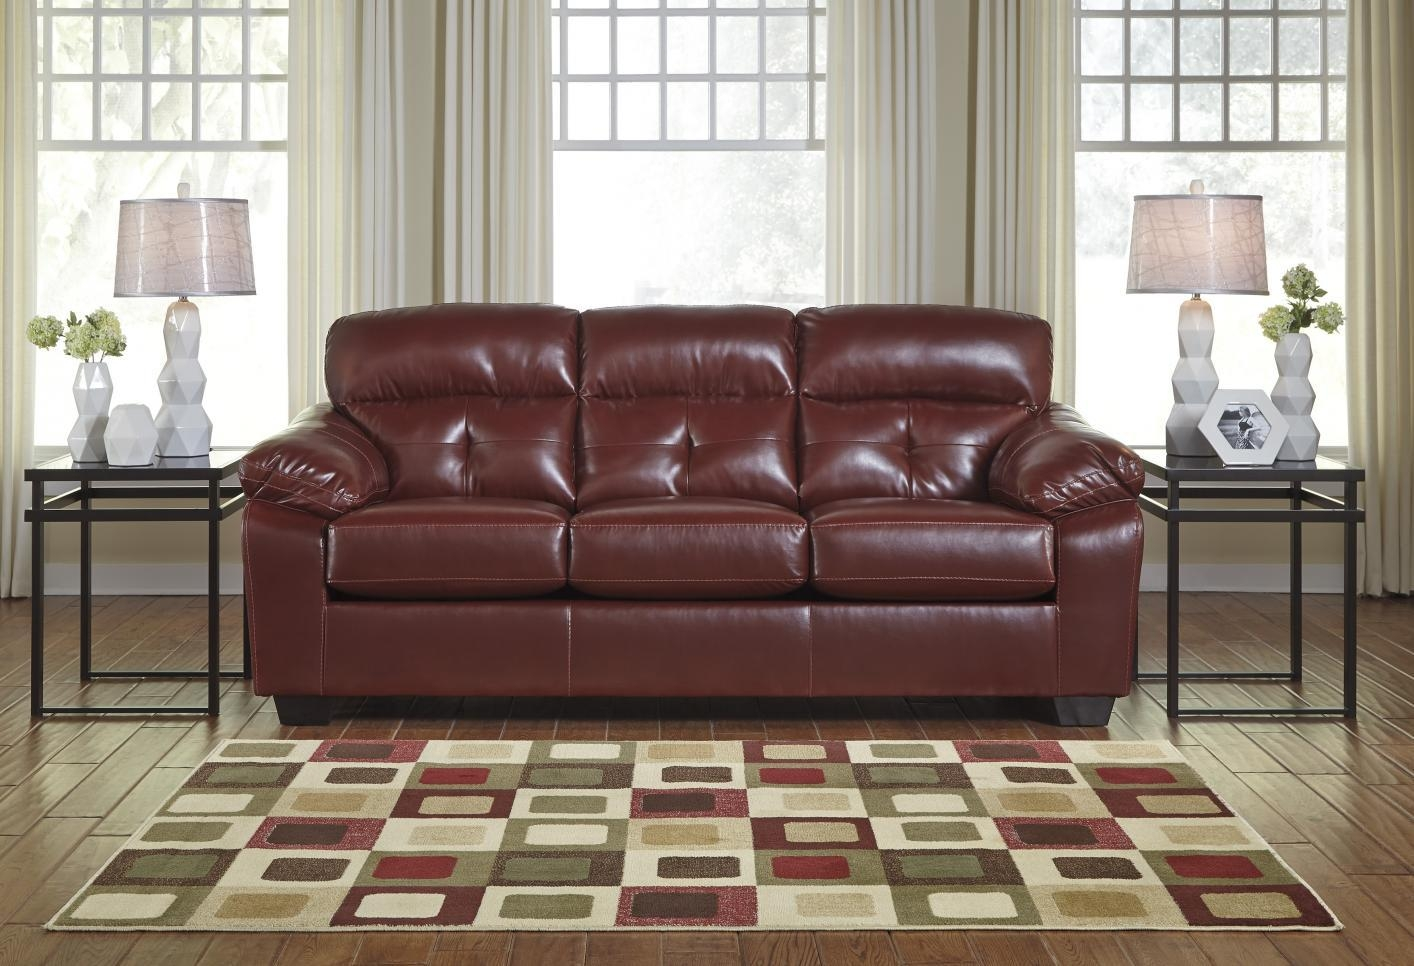 Benchcraft Leather Sofa With Ideas Photo 25331 | Kengire With Regard To Benchcraft Leather Sofas (Image 10 of 20)